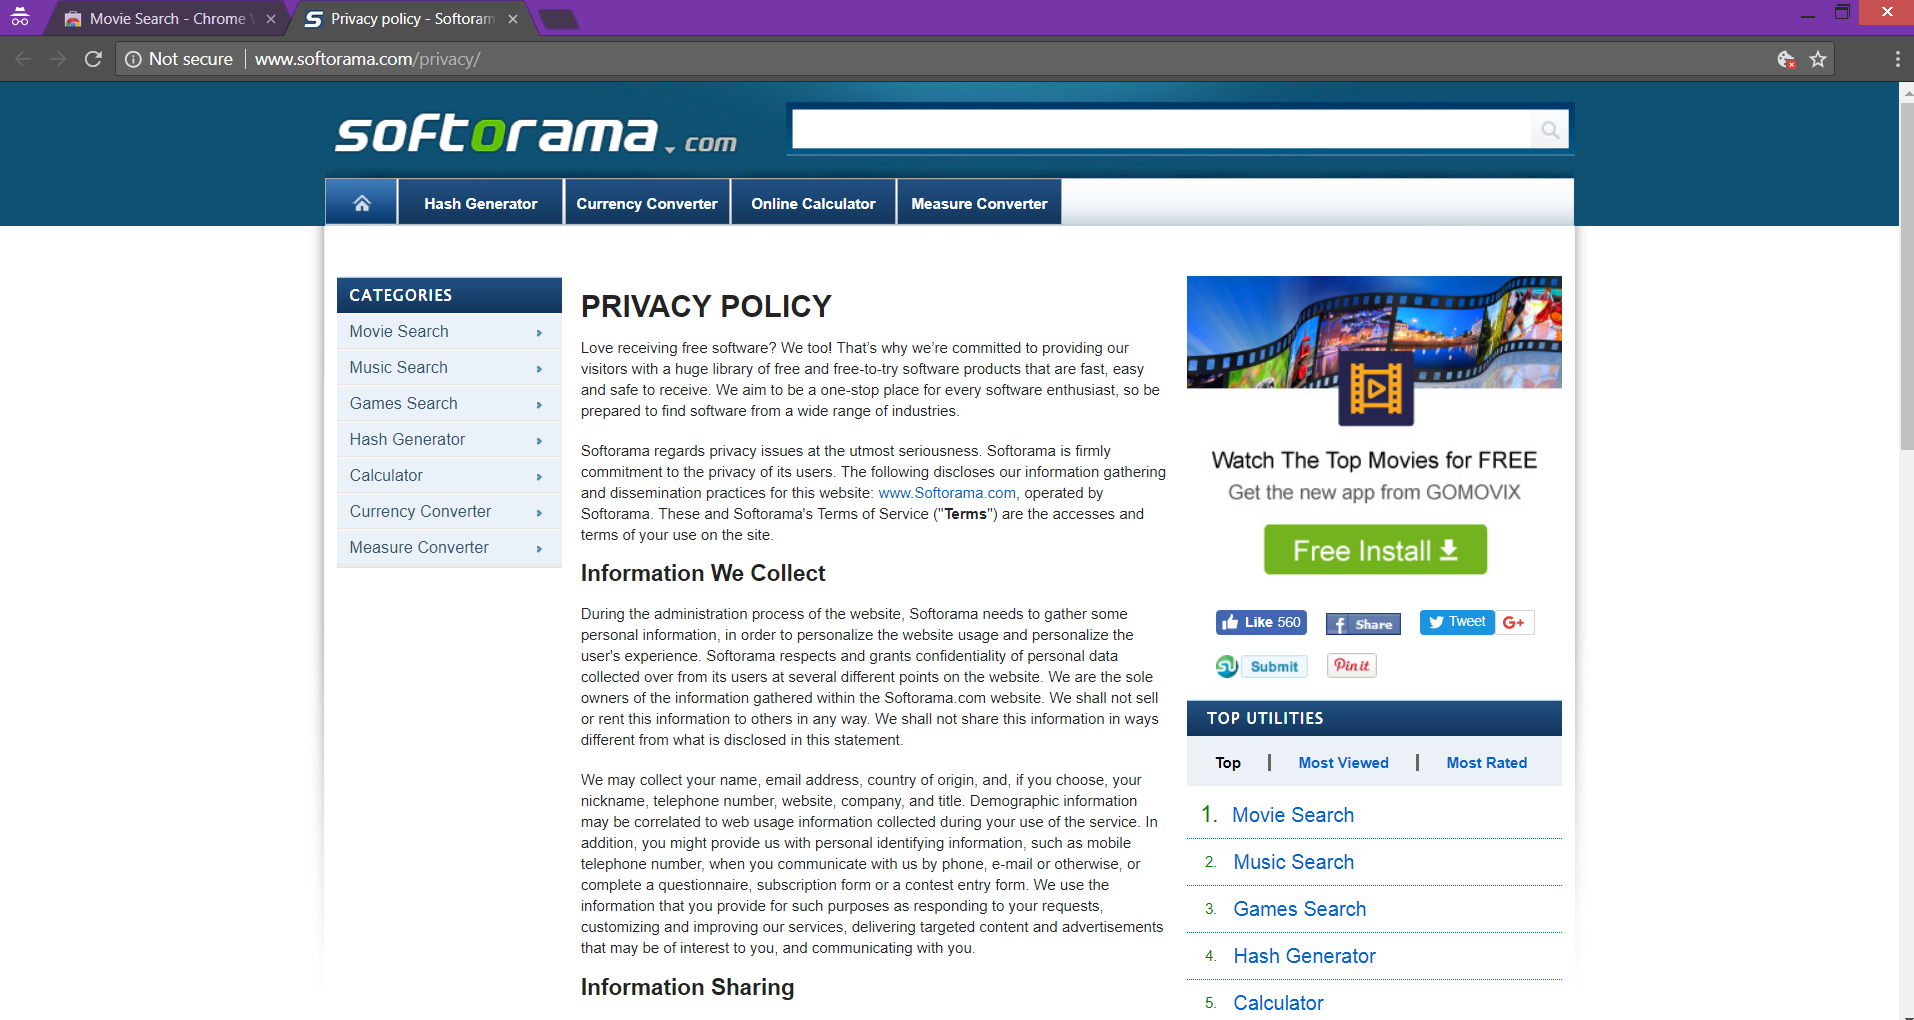 Movie Search Softorama privacy policy